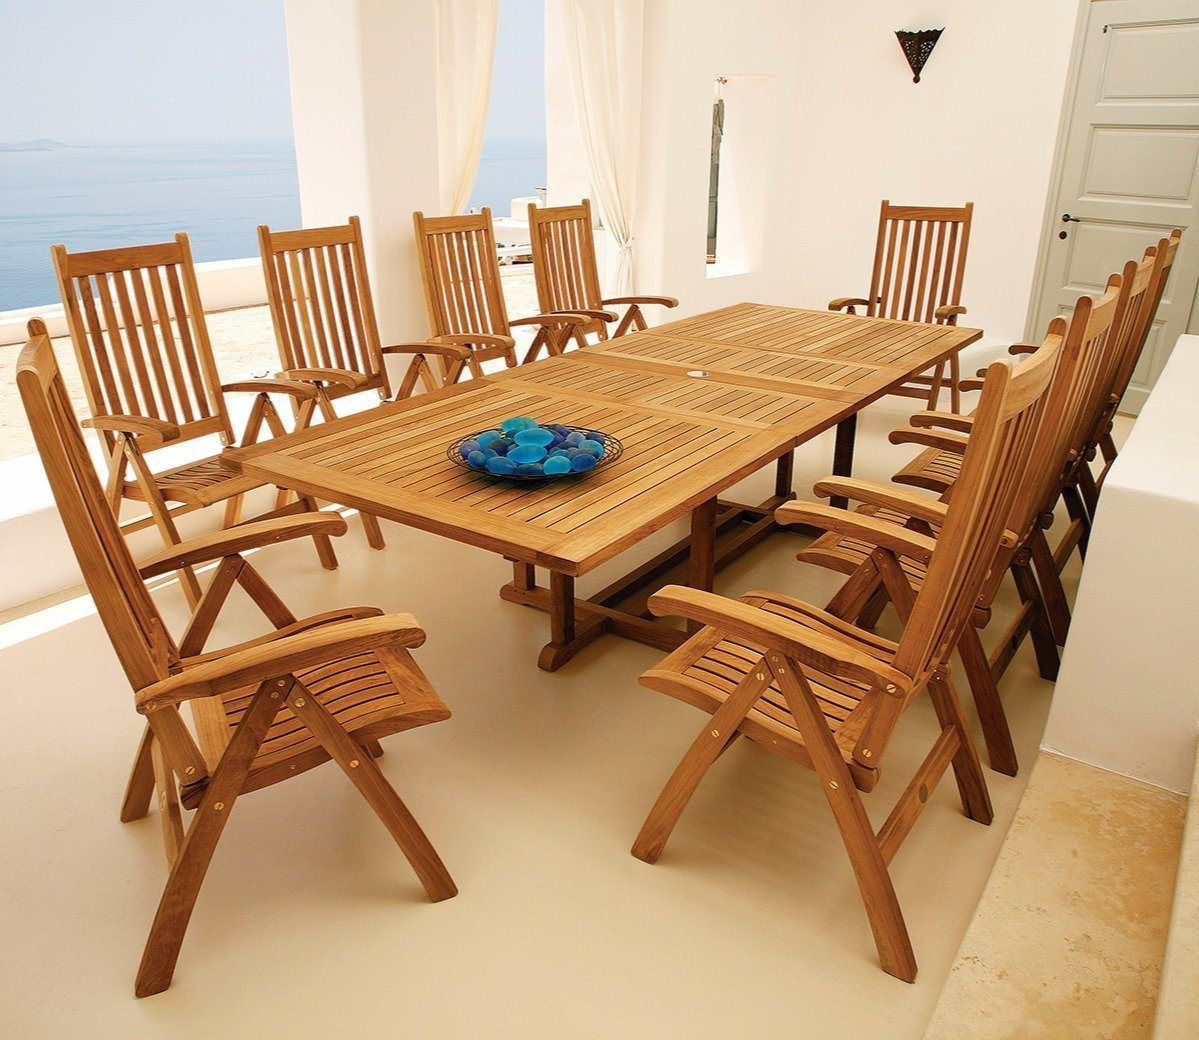 Blend of two styles the ascot arundel 10 seater dining set showcases the wonderful qualities of teak when used for high quality outdoor furniture